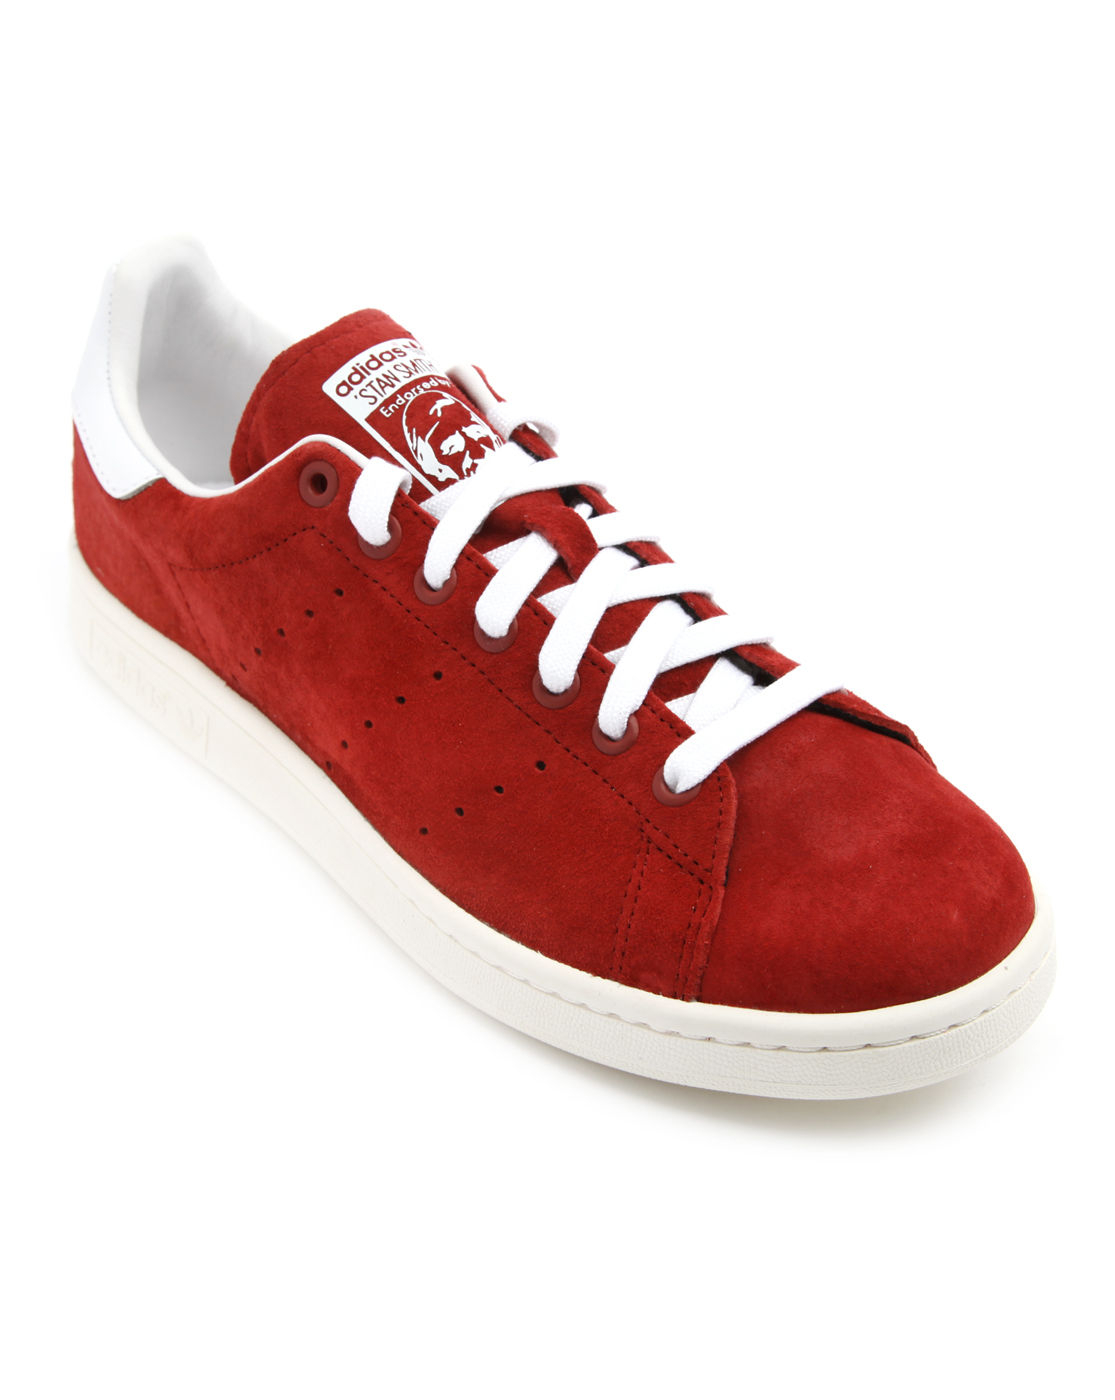 adidas stan smith red suede sneakers in red for men lyst. Black Bedroom Furniture Sets. Home Design Ideas